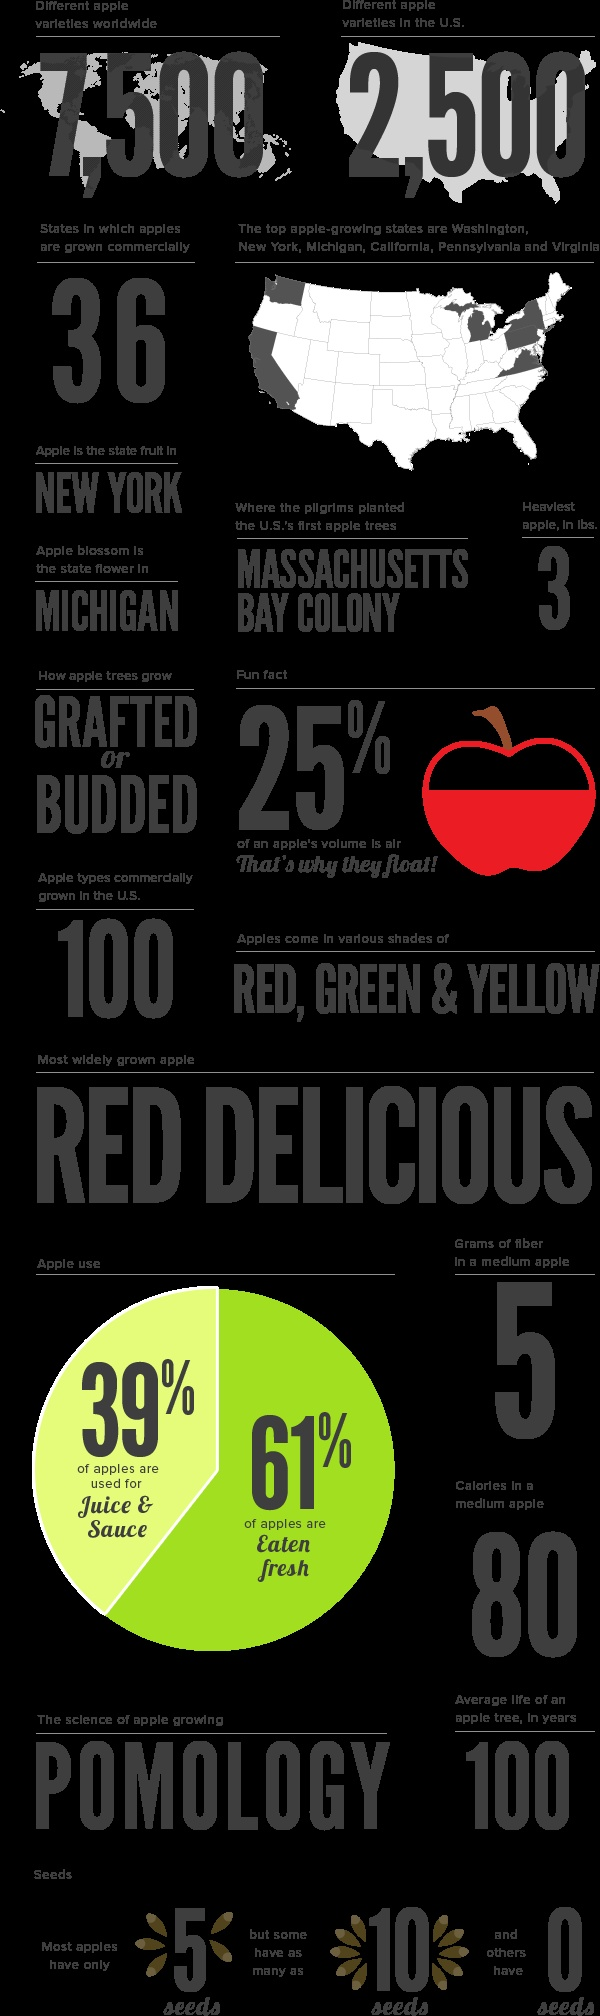 Facts About Apples: Facts Infographic